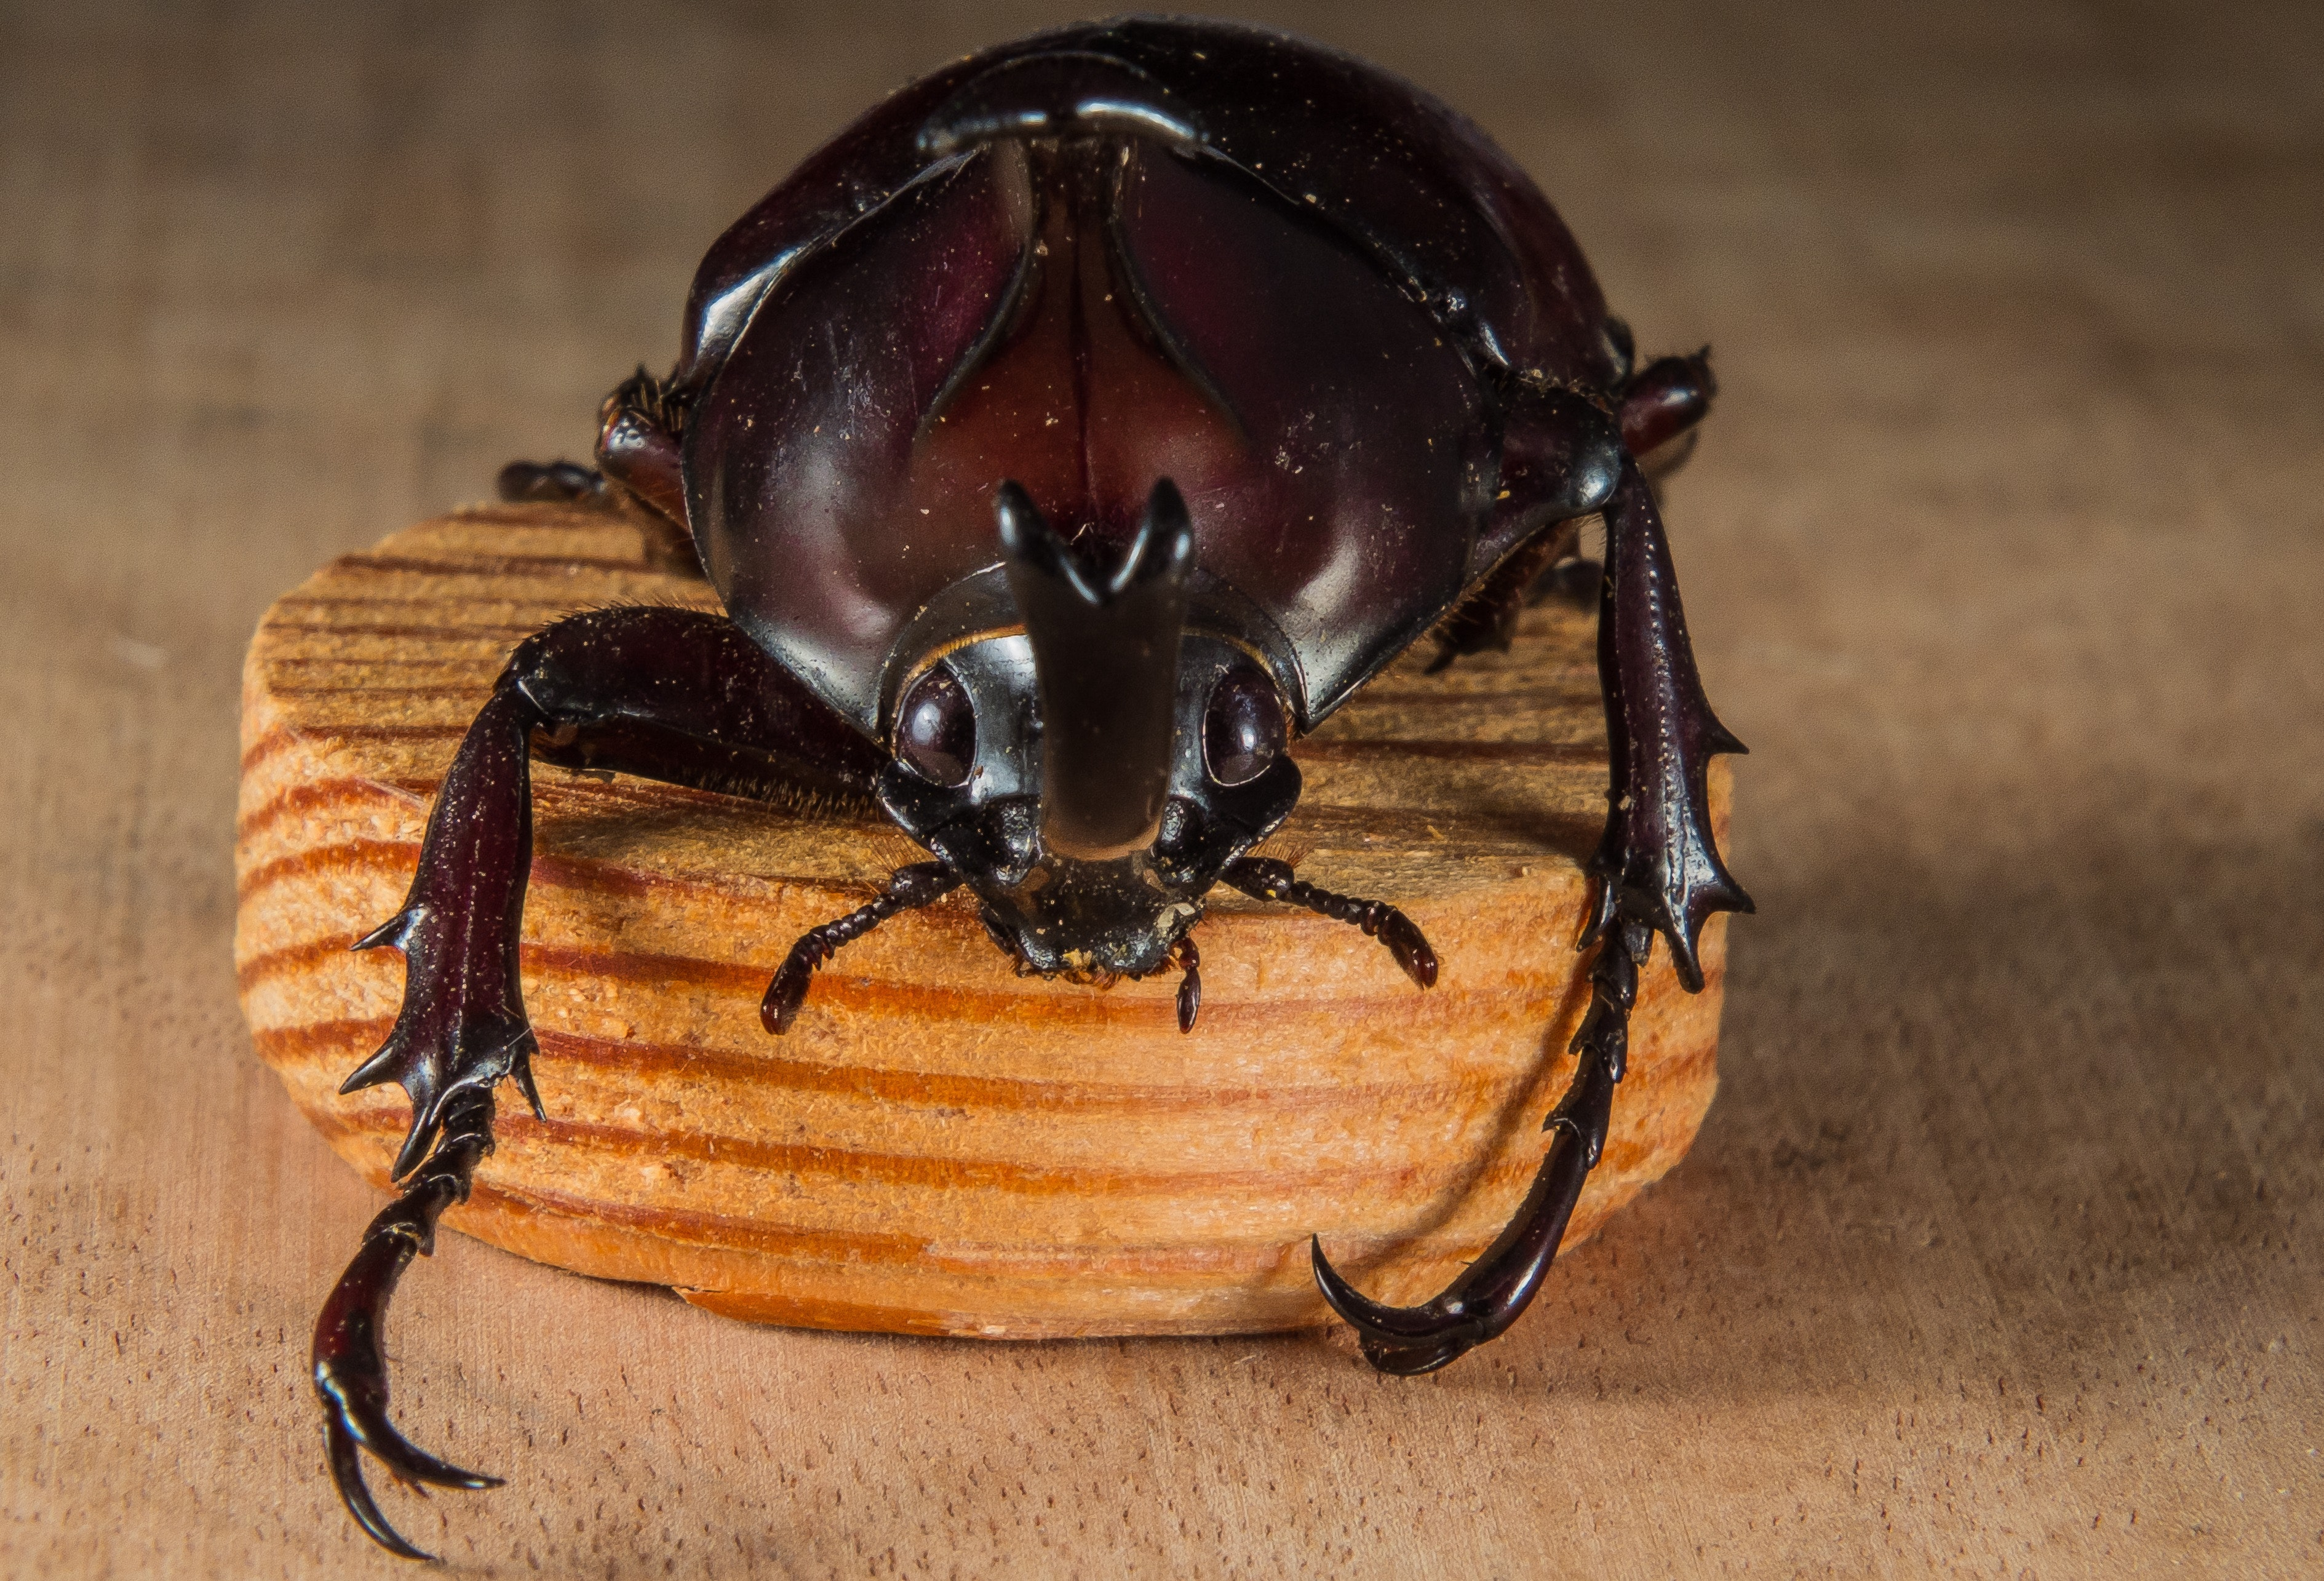 Brown Beetle, Wood, Insect, Close-up, Beetle, HQ Photo